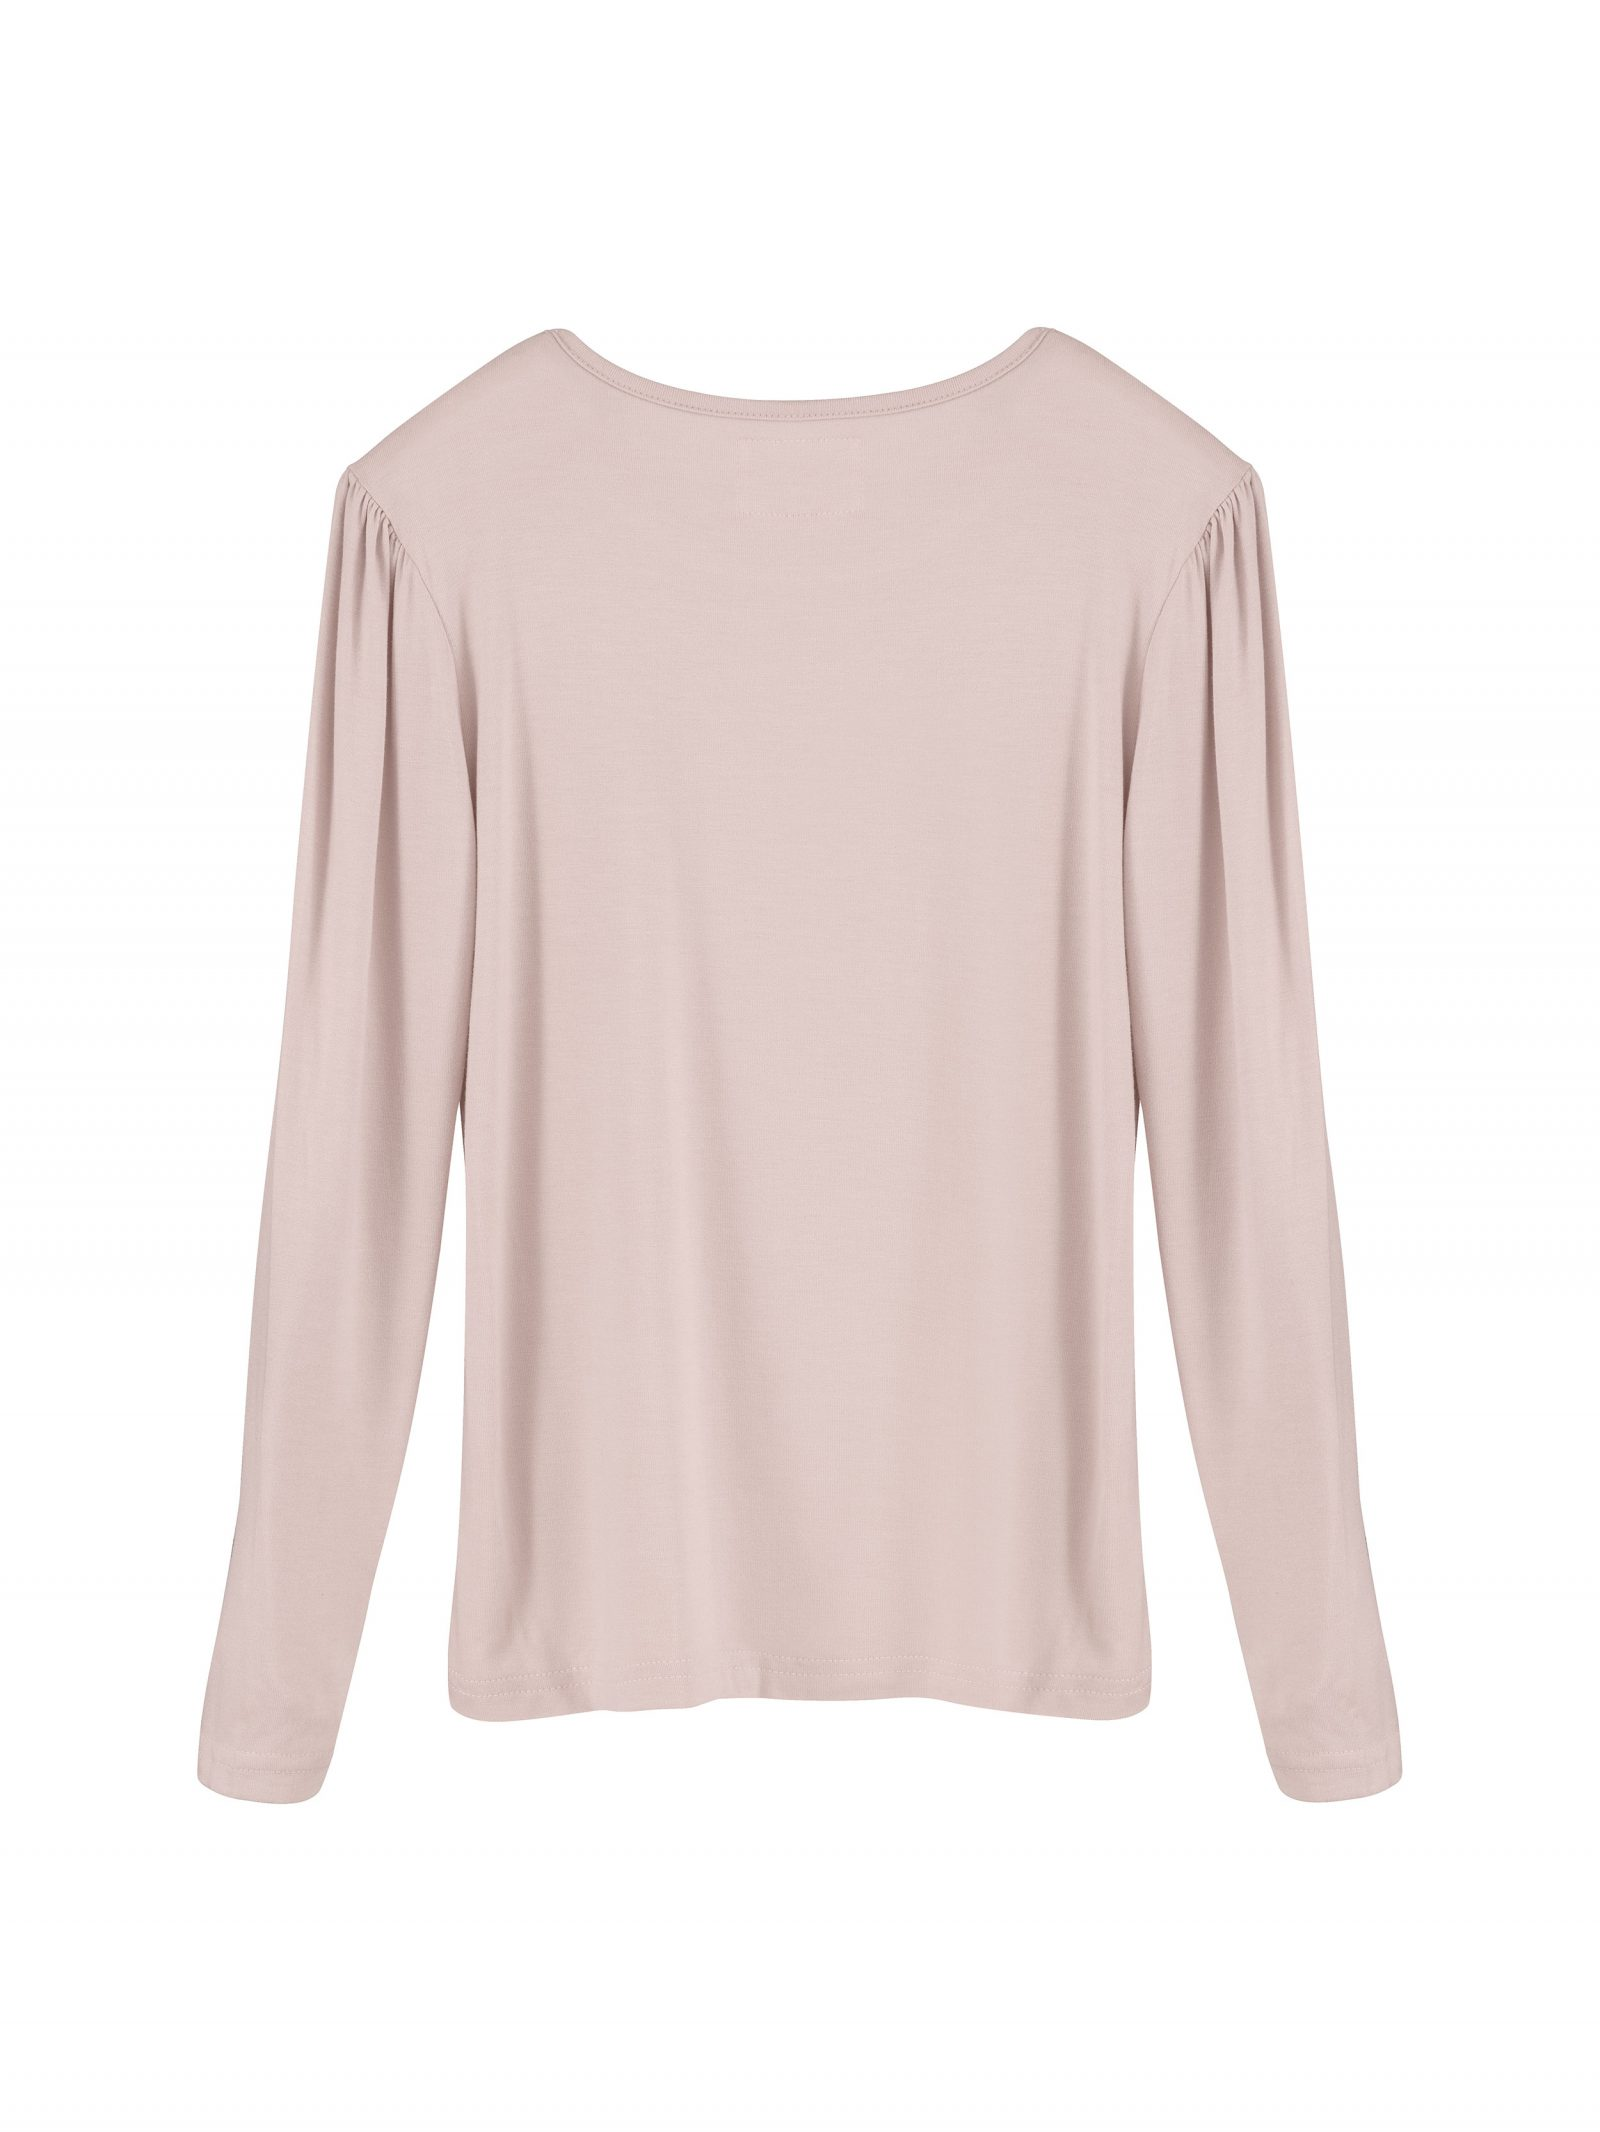 Kate Long Sleeve T Shirt in Dusty Pink - Back